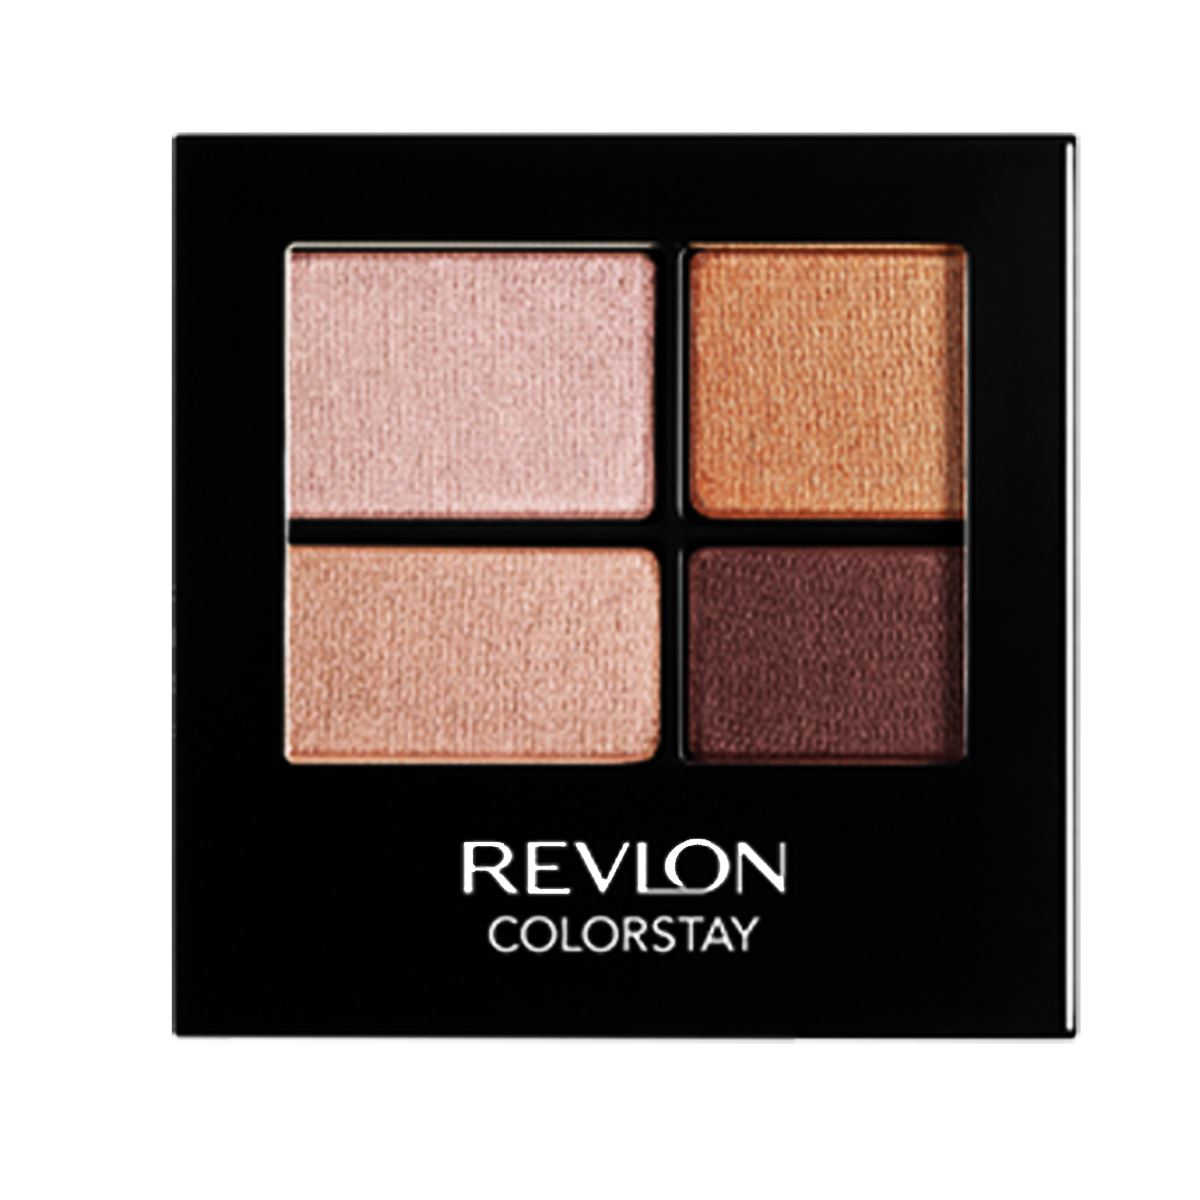 Colorstay 16 hr eye shadow  - Sanborns